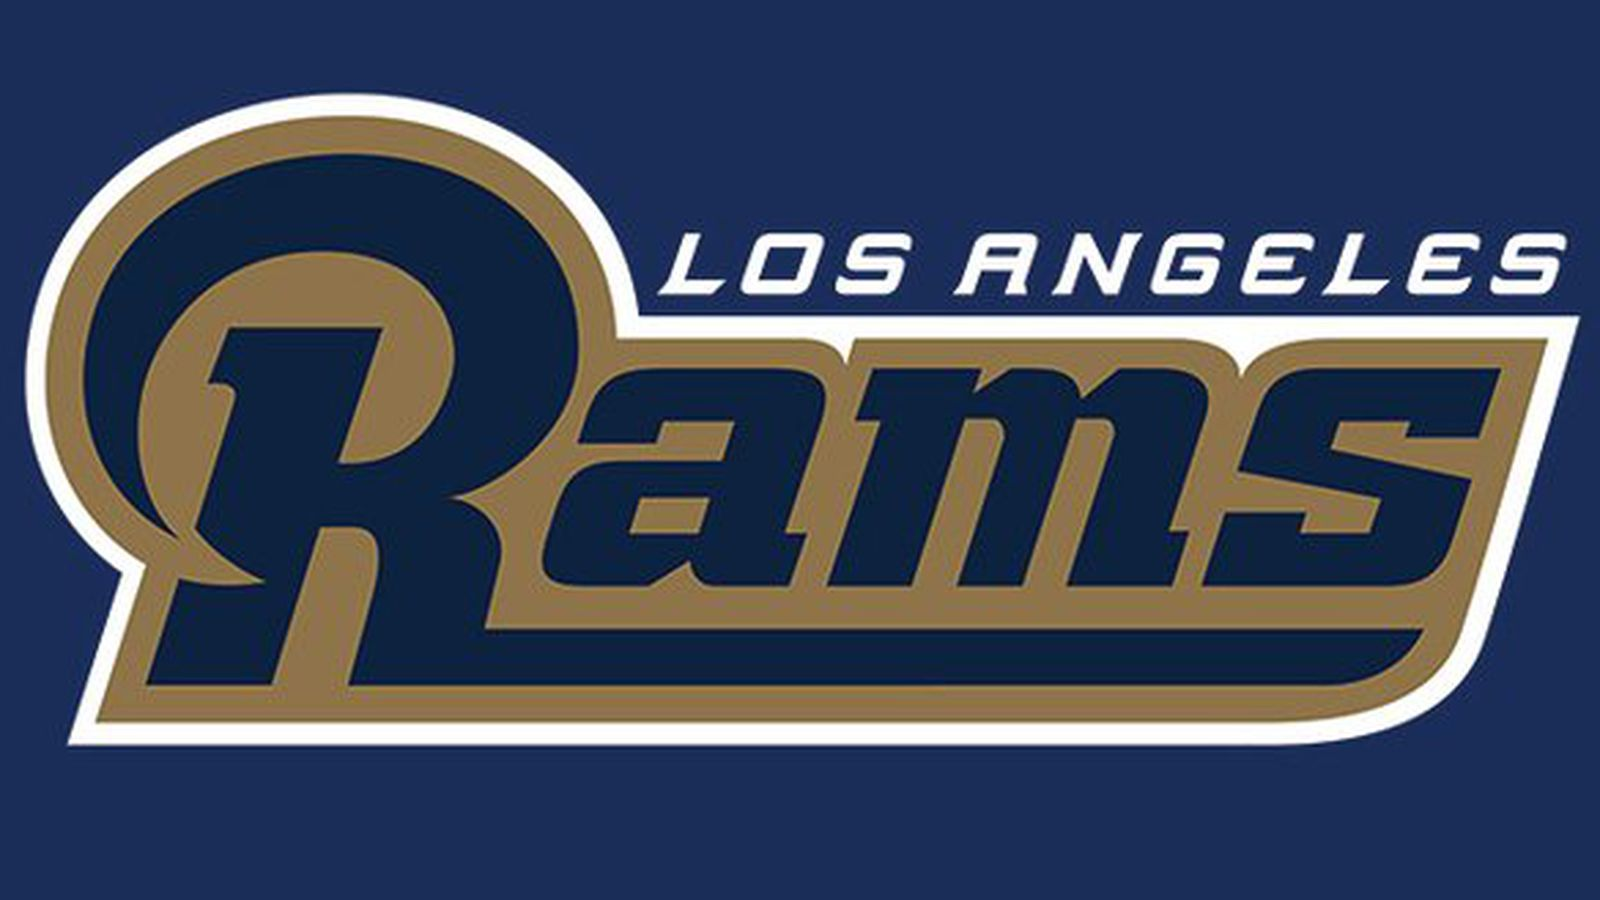 The new Los Angeles Rams logo is the old logo but now it ...